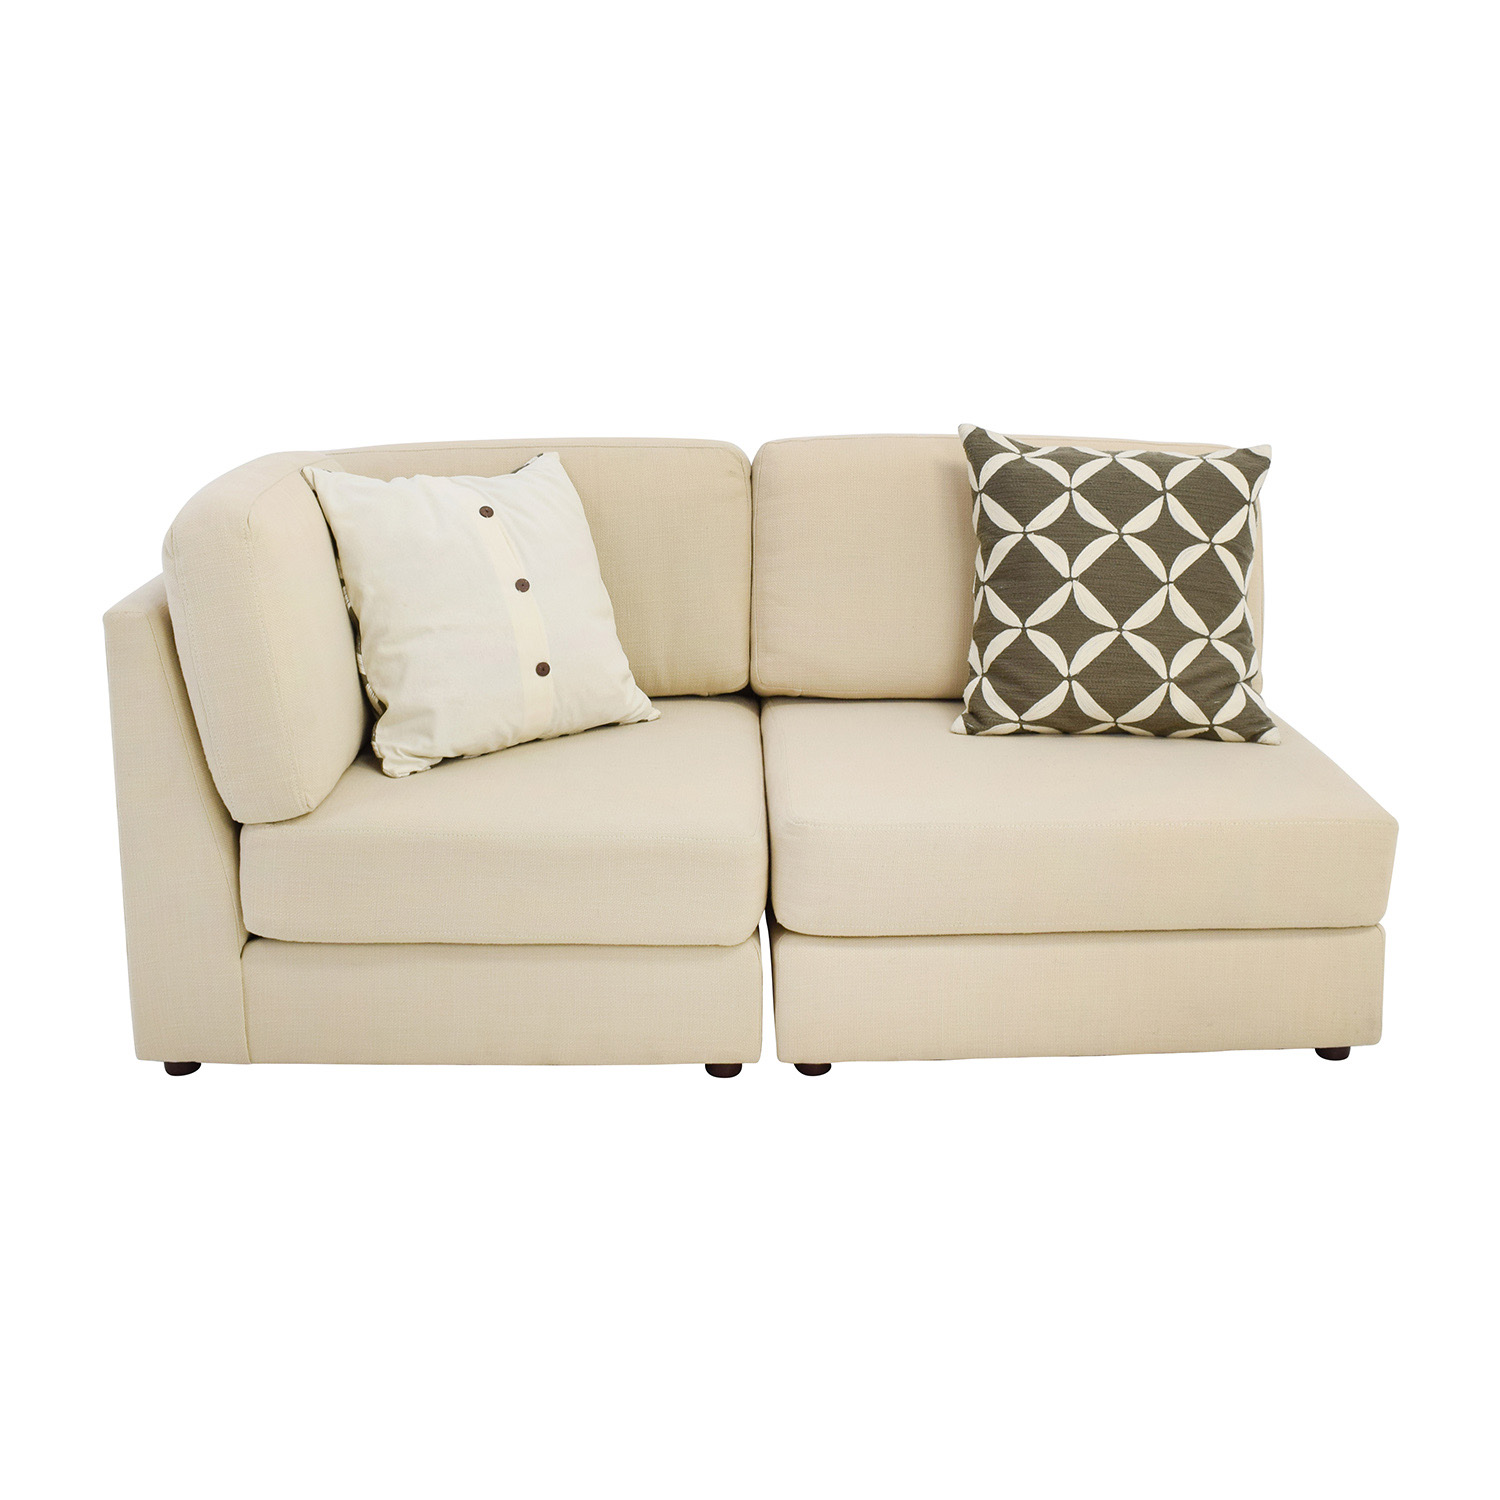 West Elm Cream Chaise Sofa or Two Chairs West Elm